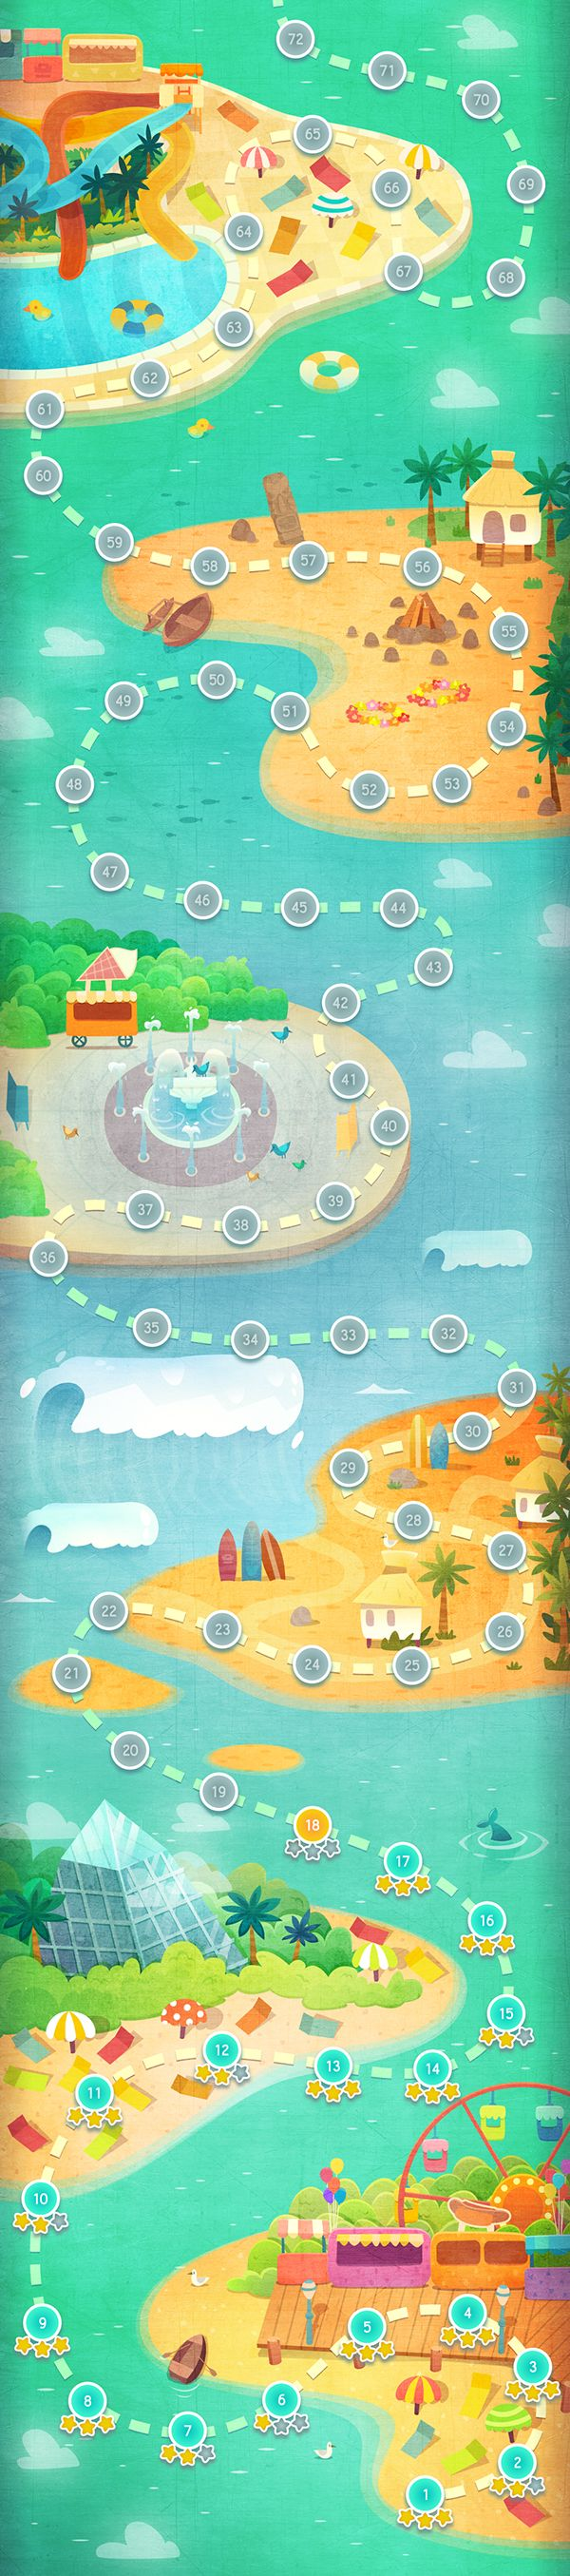 Graphic and UI design for mobile game More